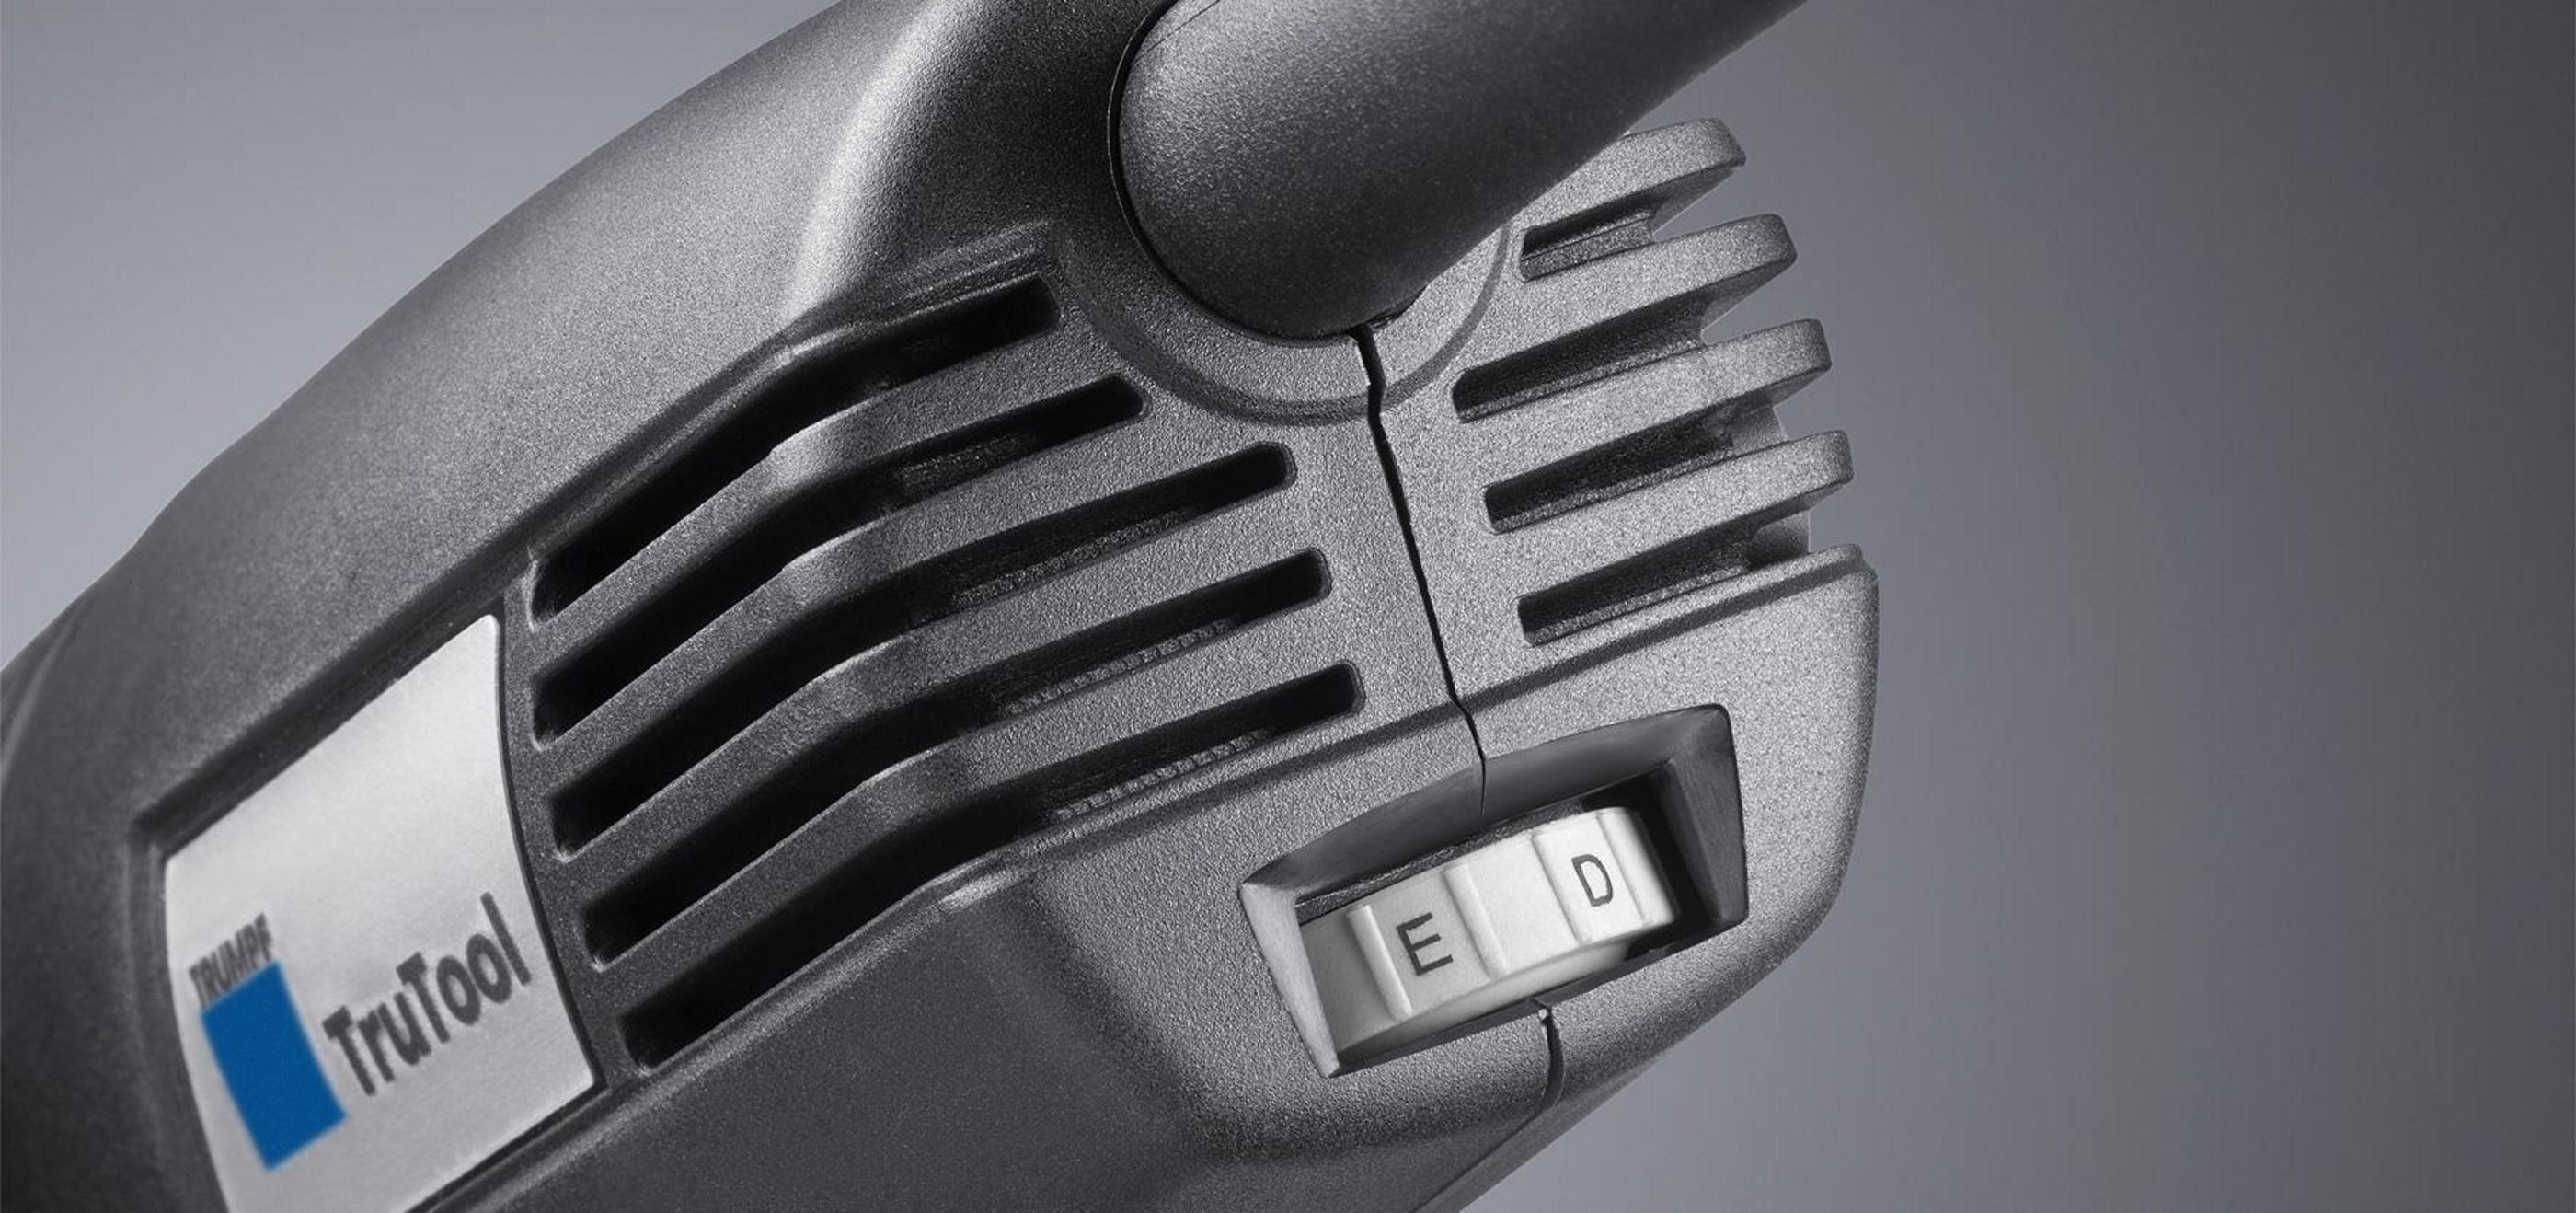 Electro variable speed control